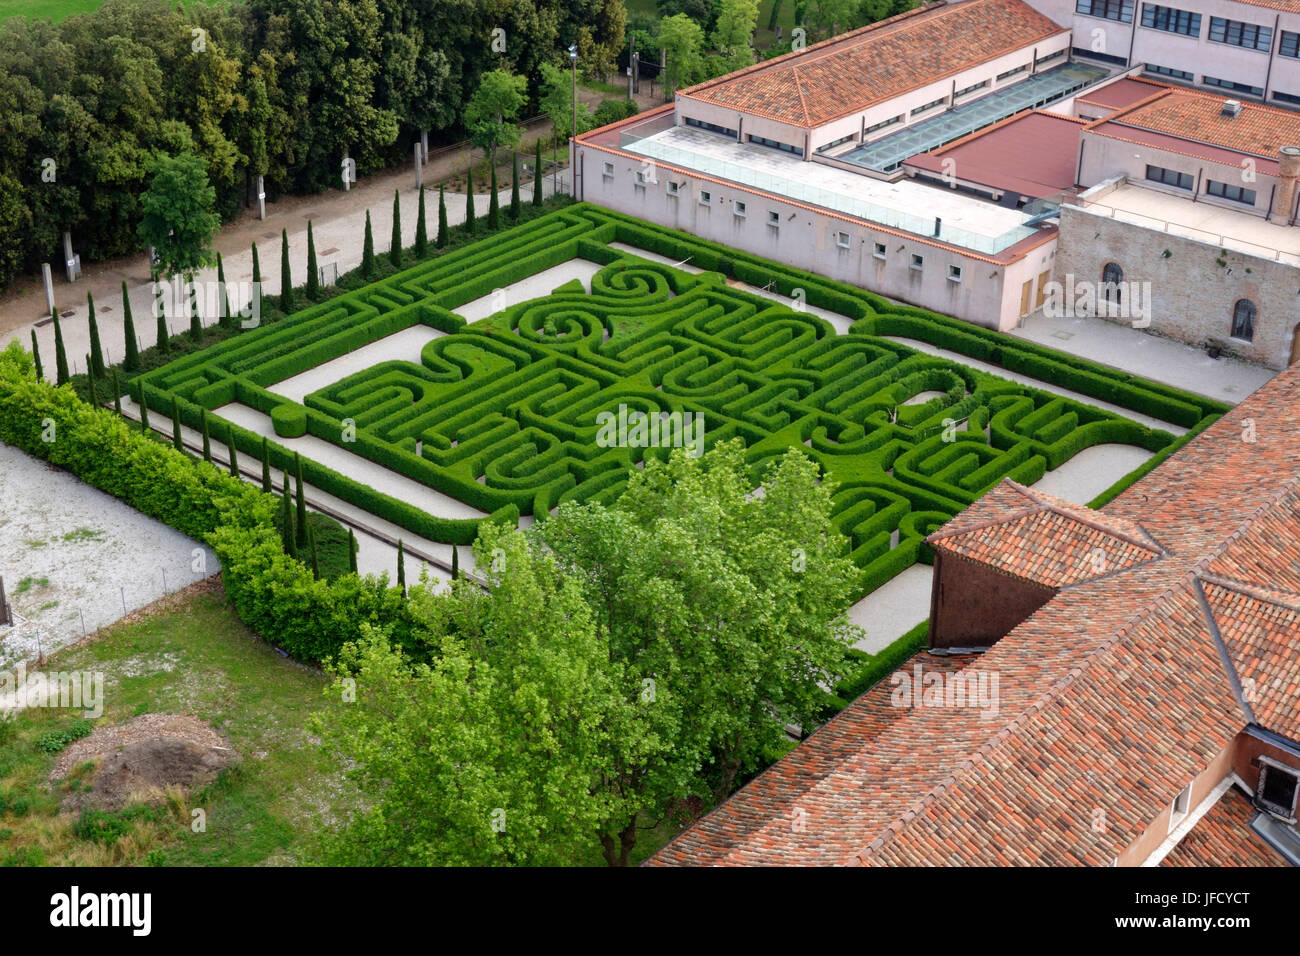 View from the spire of San Giorgio Maggiore church of the Garden maze - Stock Image